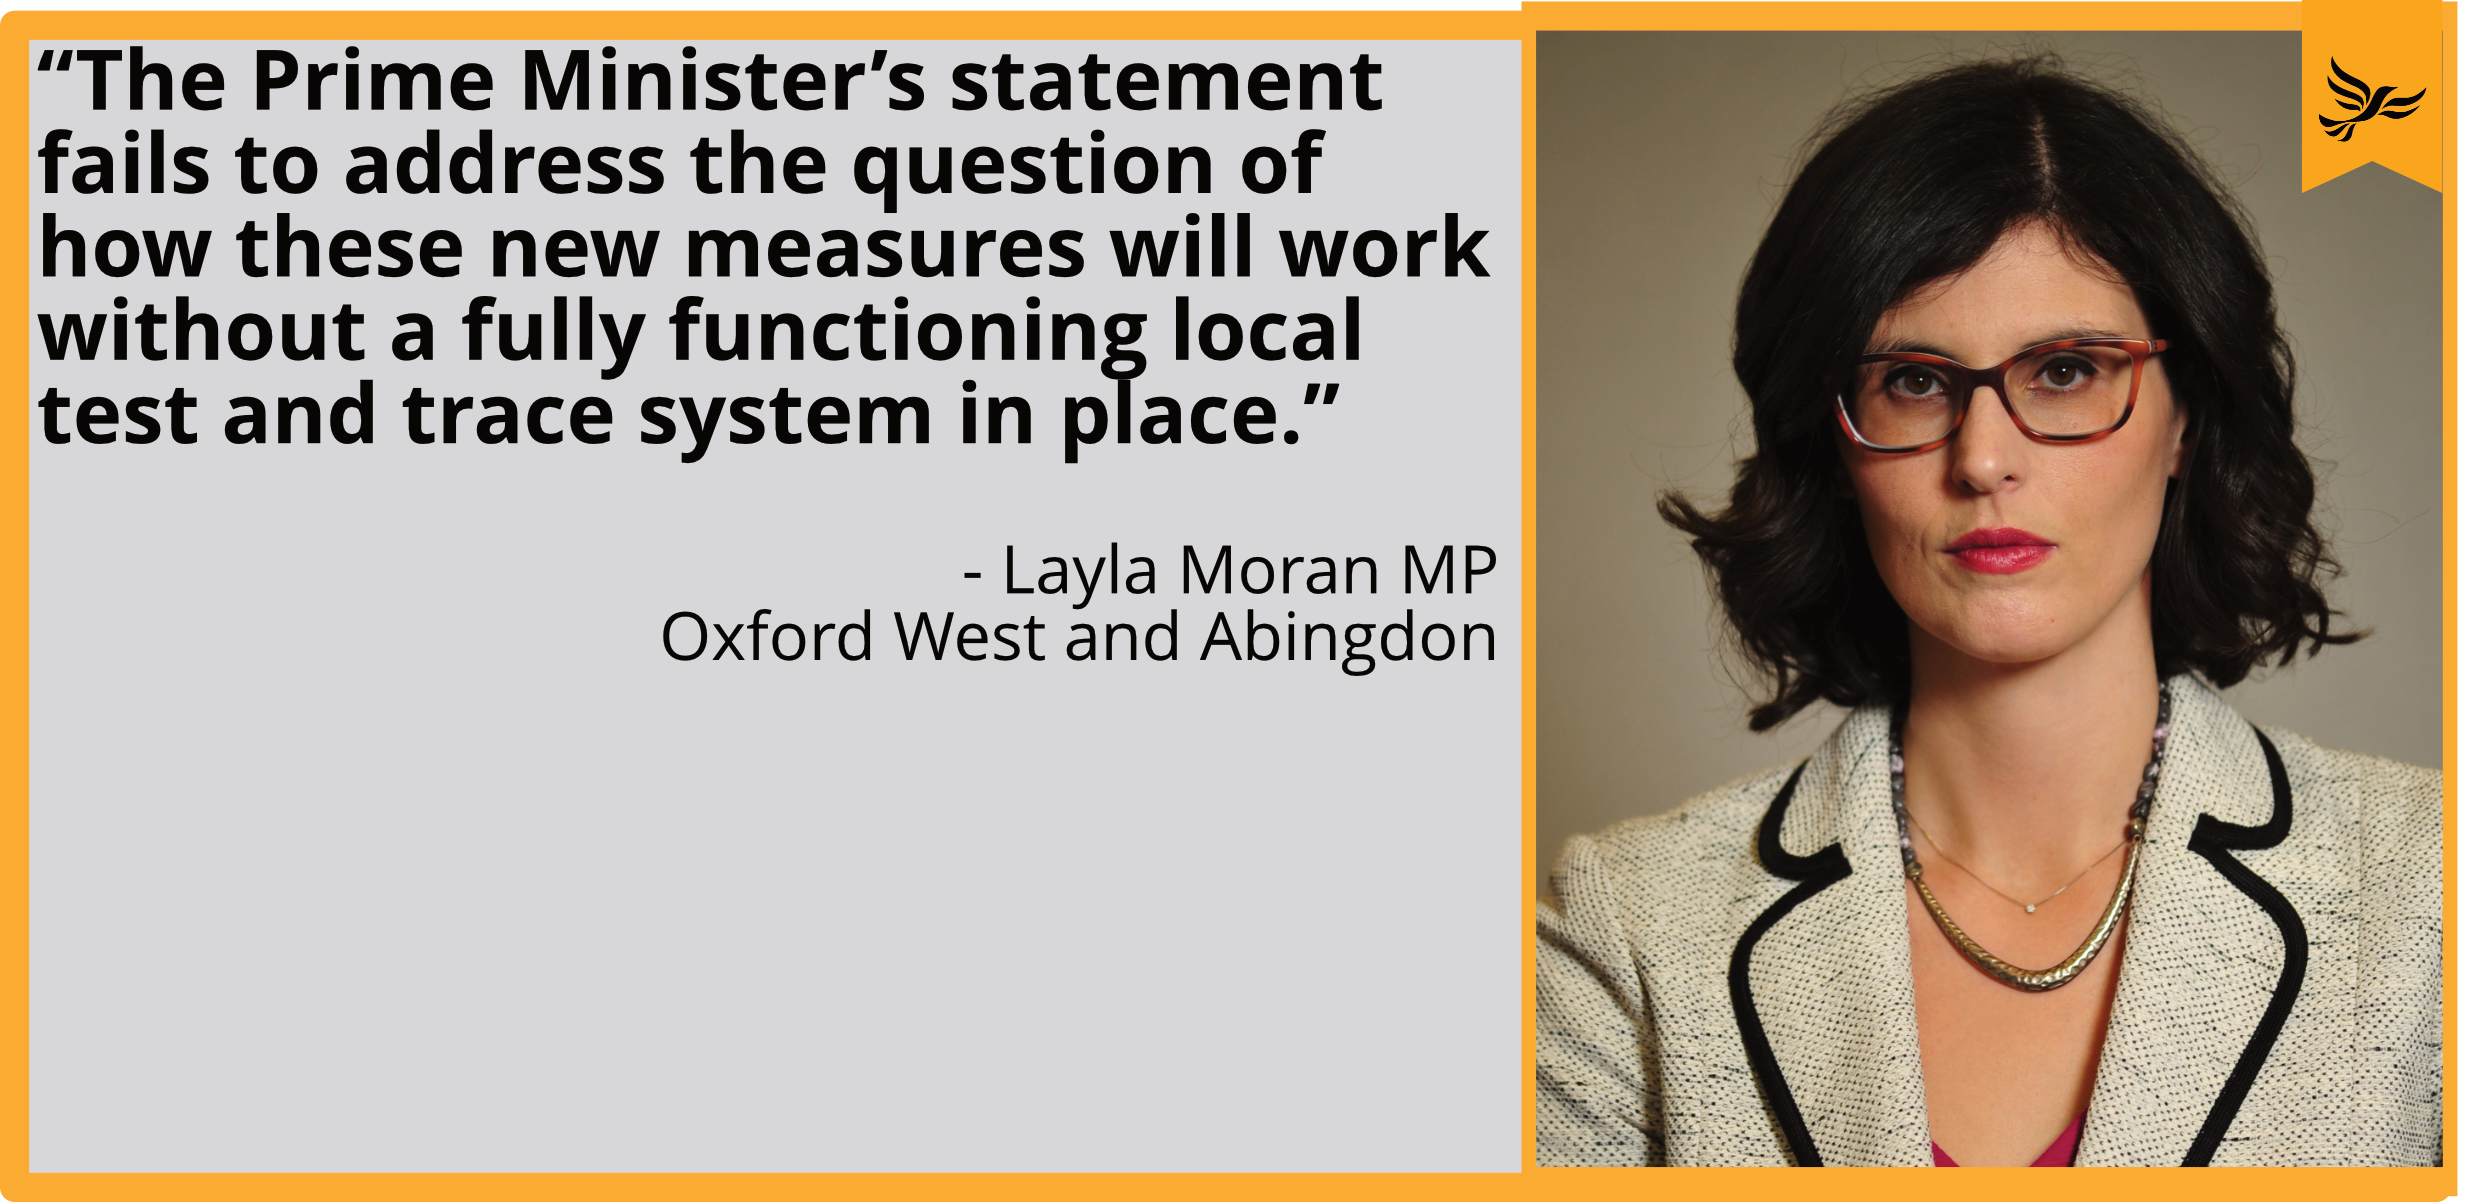 """The Prime Minister's statement fails to address the question of how these new measures will work without a fully functioning local test and trace system in place."